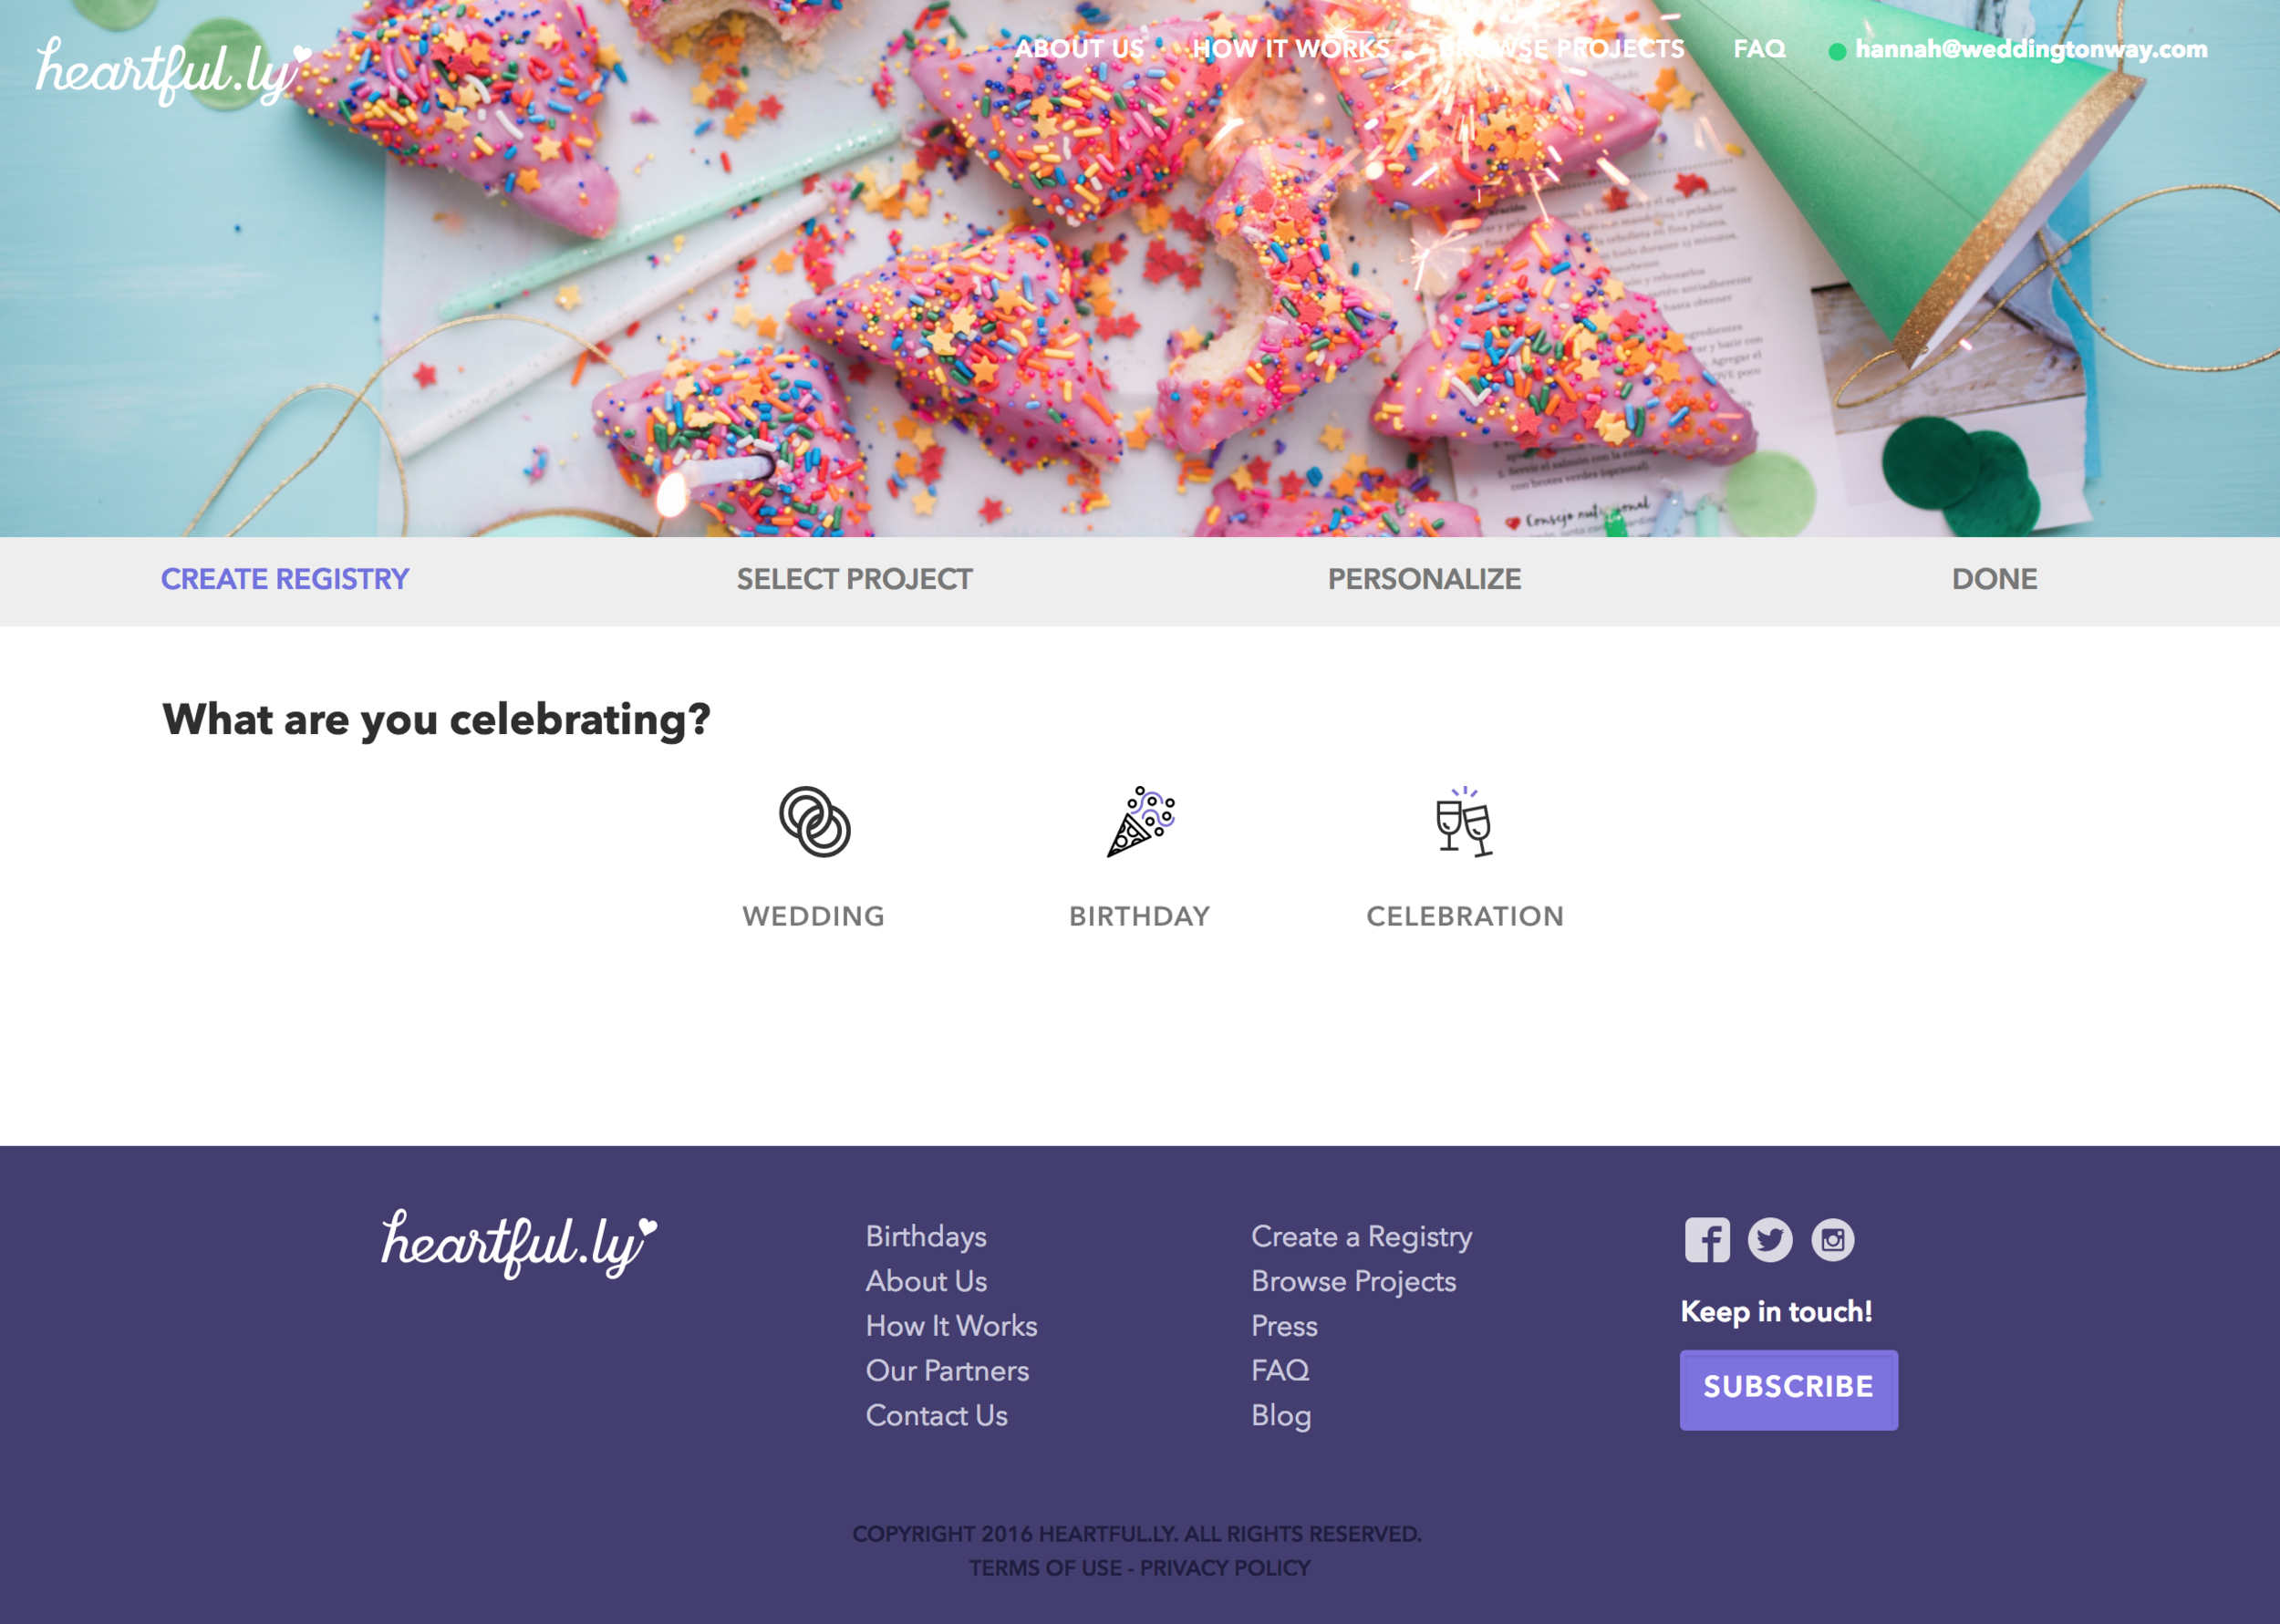 screencapture-heartful-ly-registries-new-1498536784734.png